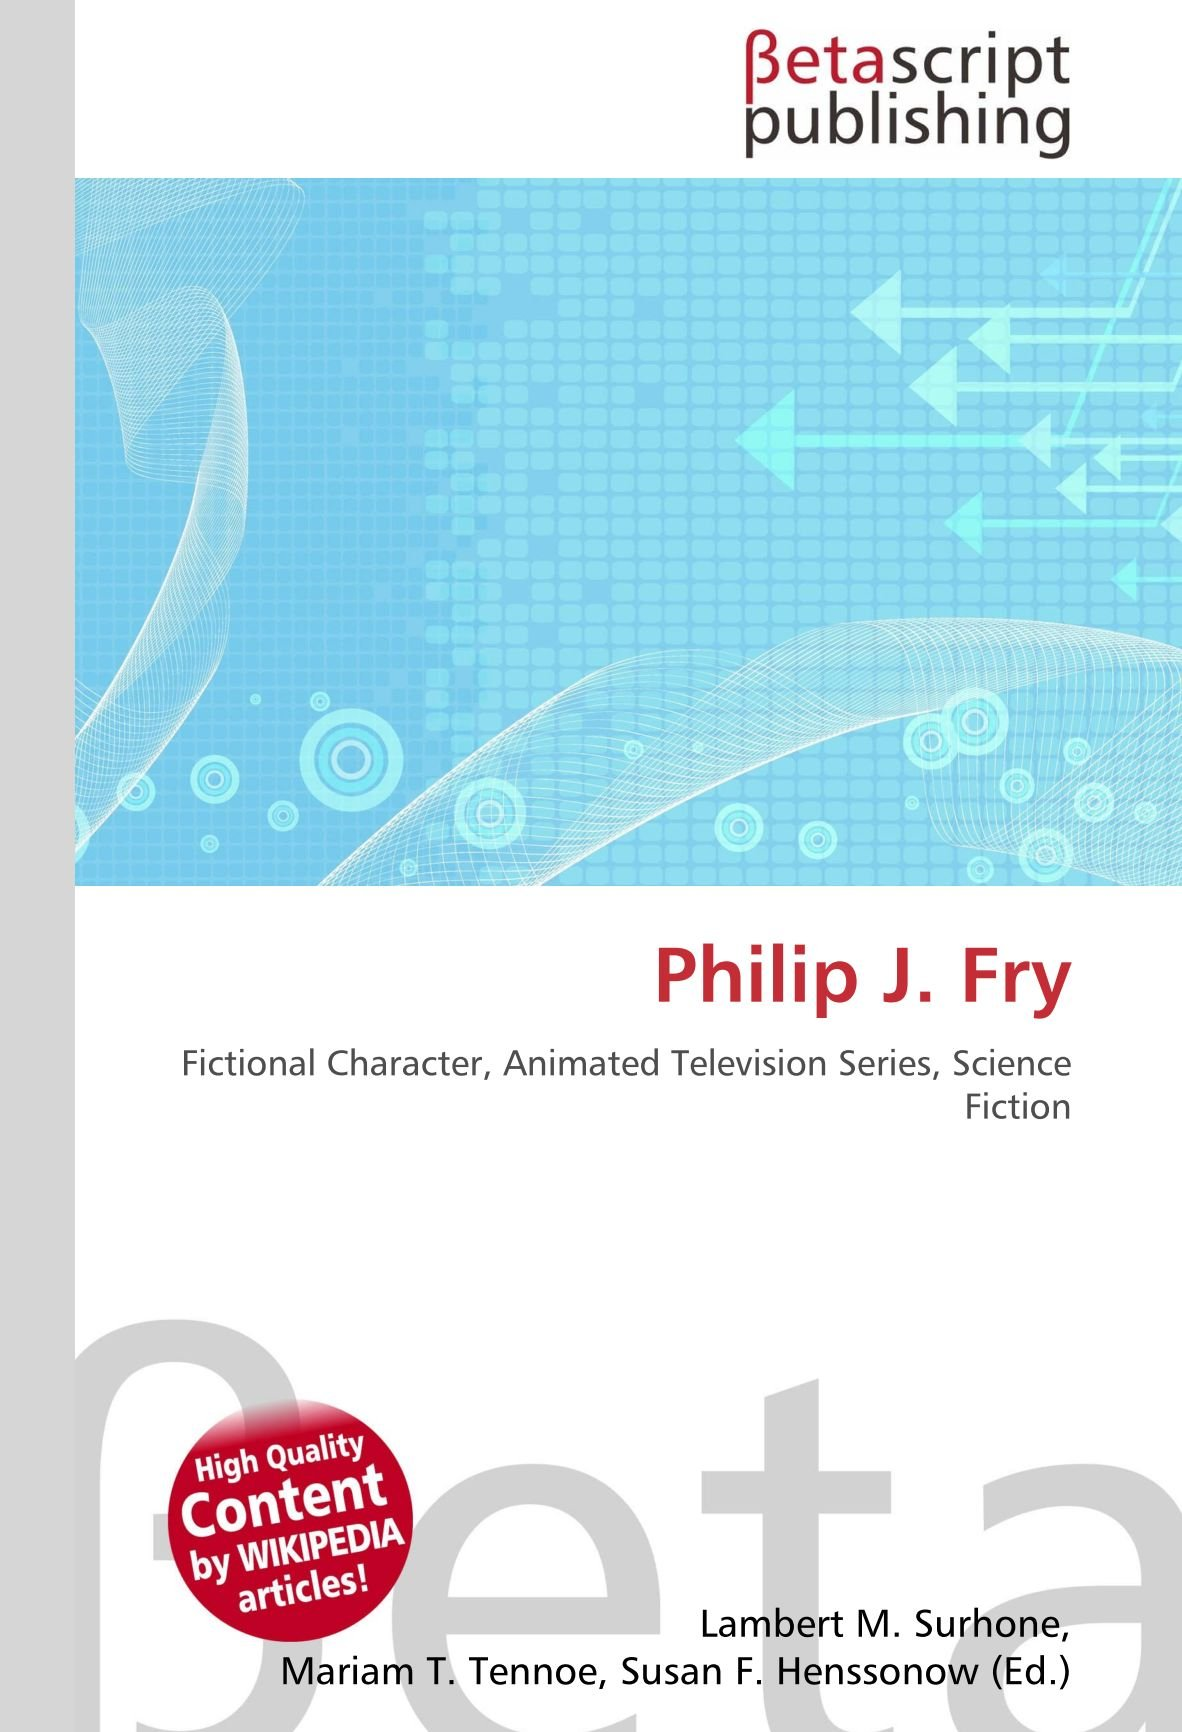 Philip J. Fry: Fictional Character, Animated Television Series, Science Fiction: Amazon.es: Surhone, Lambert M, Timpledon, Miriam T, Marseken, Susan F: Libros en idiomas extranjeros